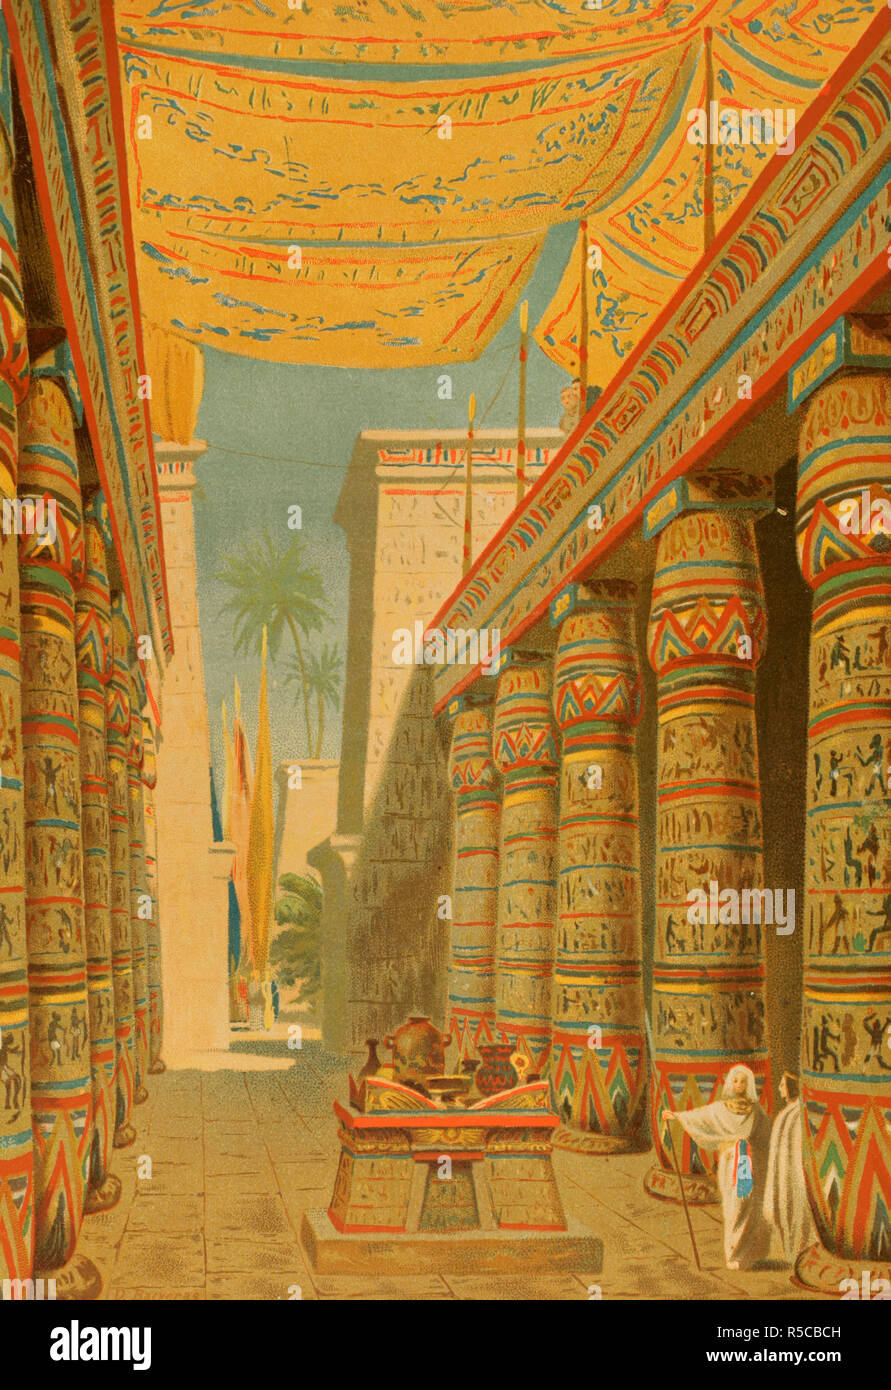 ancient egypt palace stock photos ancient egypt palace. Black Bedroom Furniture Sets. Home Design Ideas